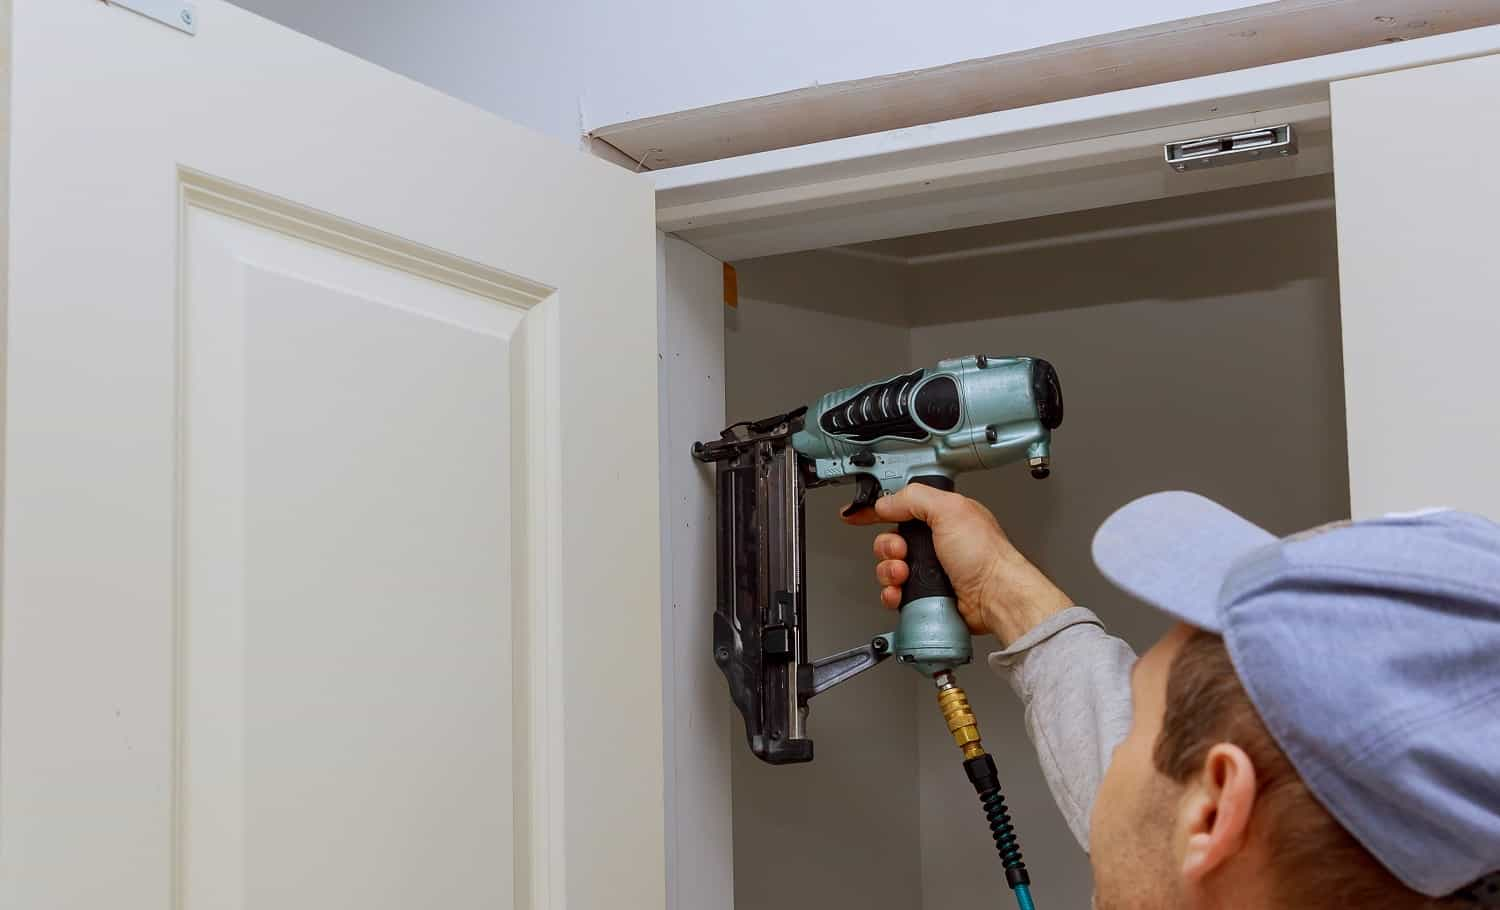 Installation of interior room doors using a air nail pneumatic gun